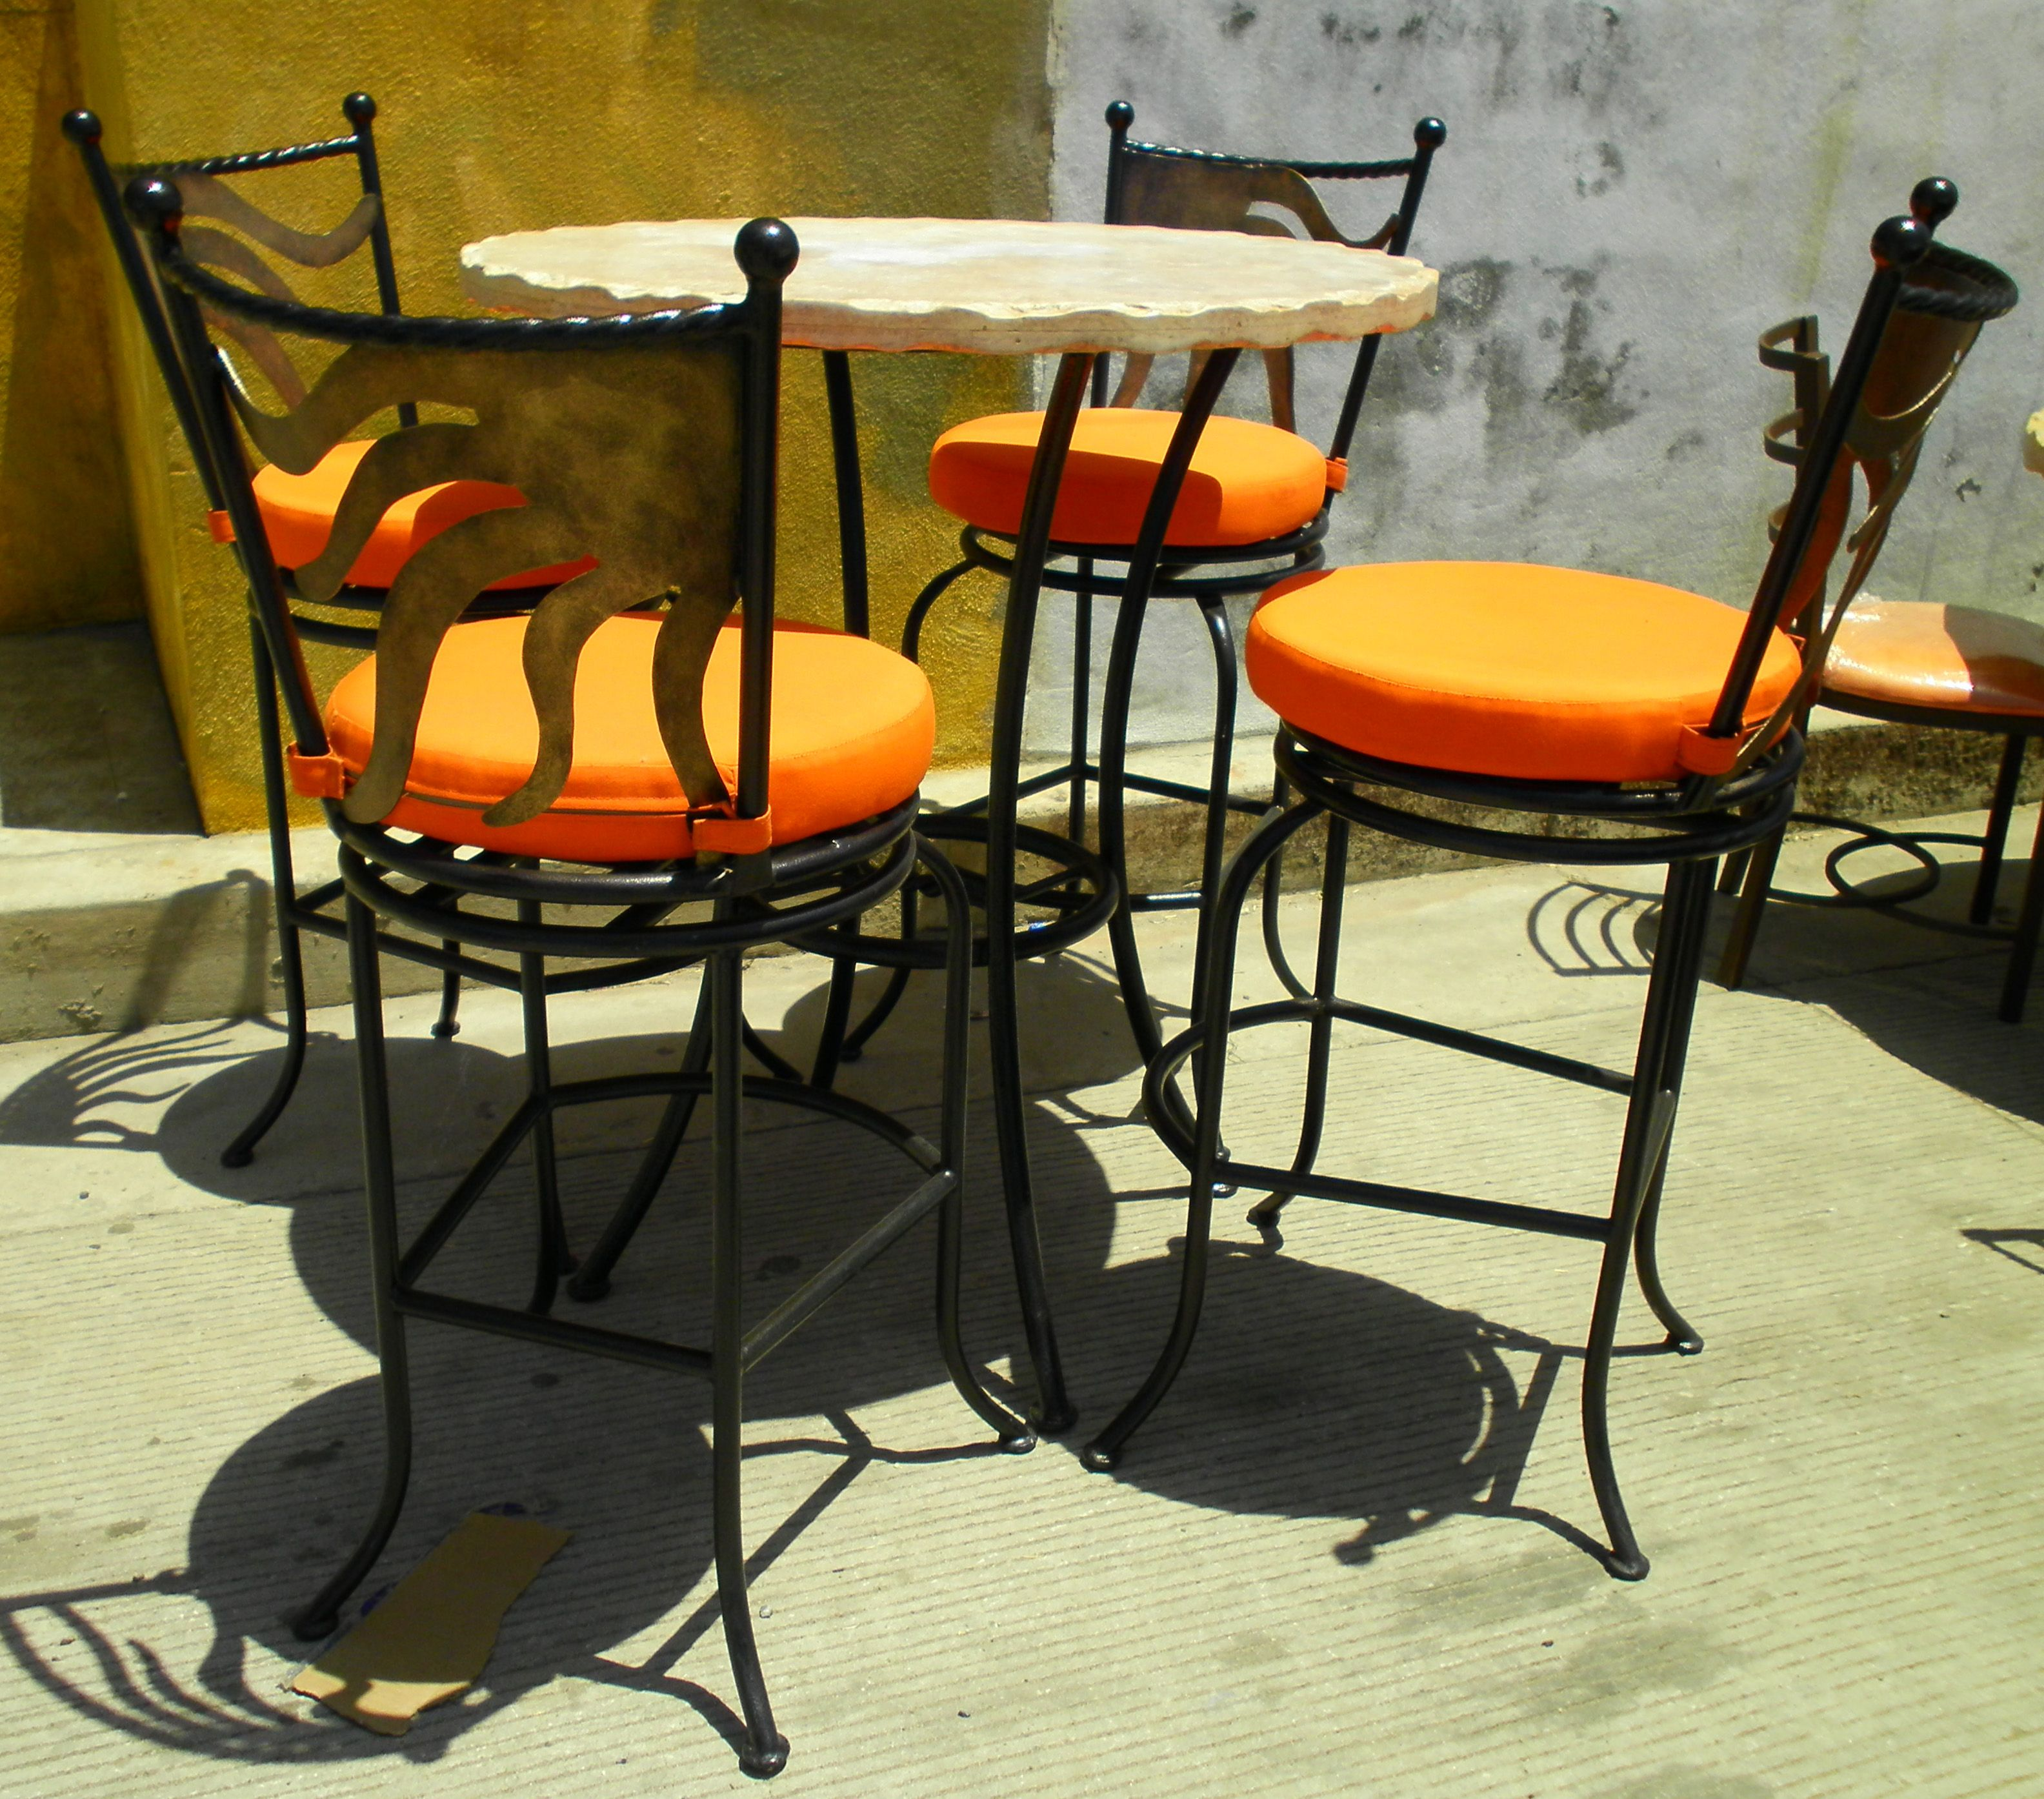 4 Person Pub Table Bistro Set With Cozumel Swivel Bar Stools From Surf Side Patio